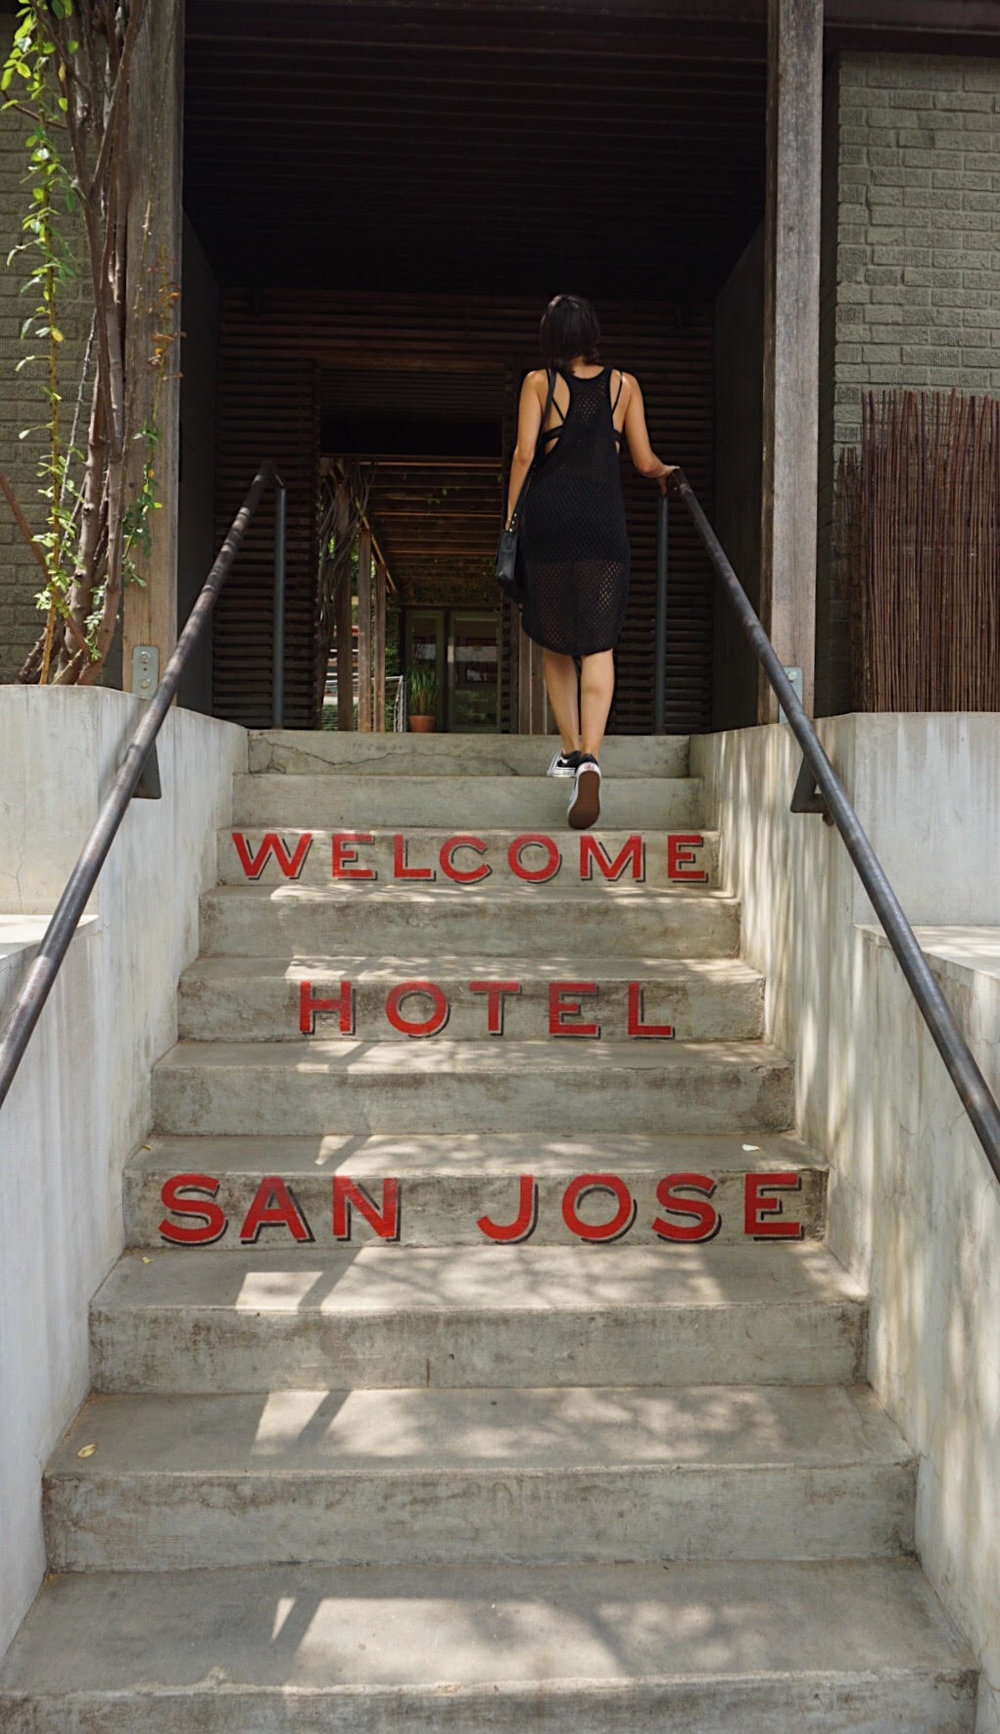 We had to stop at Hotel San Jose for some frose's, which is like a margarita but made with Rose' wine, so basically a wine slushie - lol. Mmmm....so good!